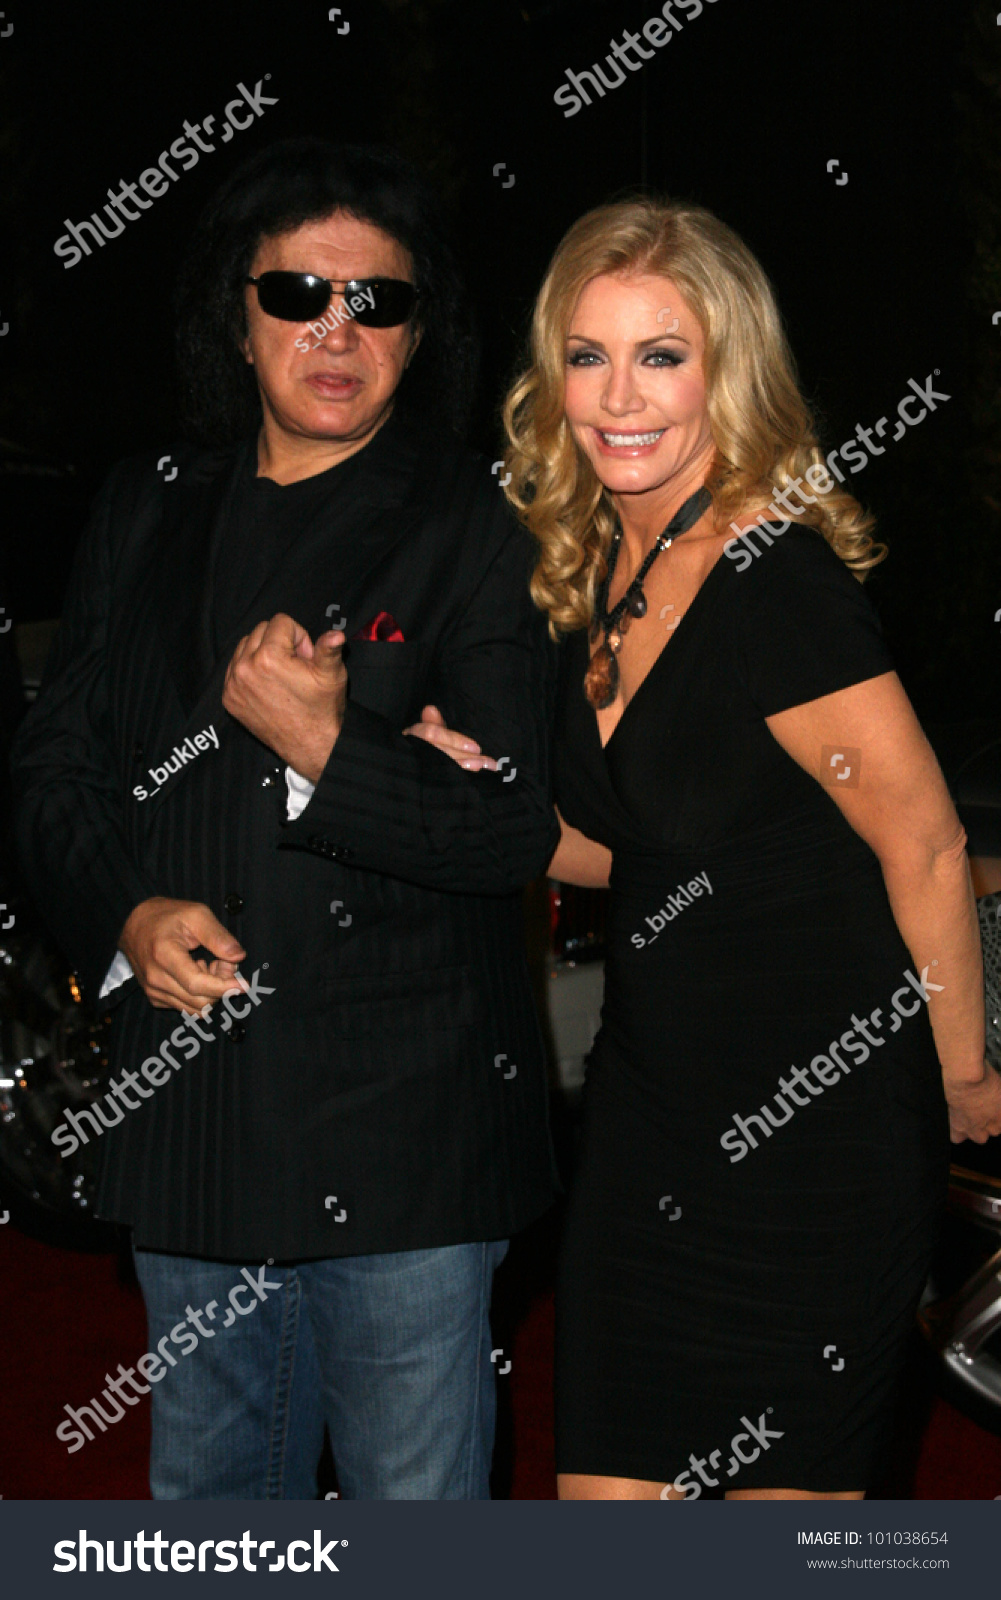 Celebrites Shannon Tweed nudes (29 foto and video), Topless, Fappening, Feet, butt 2019